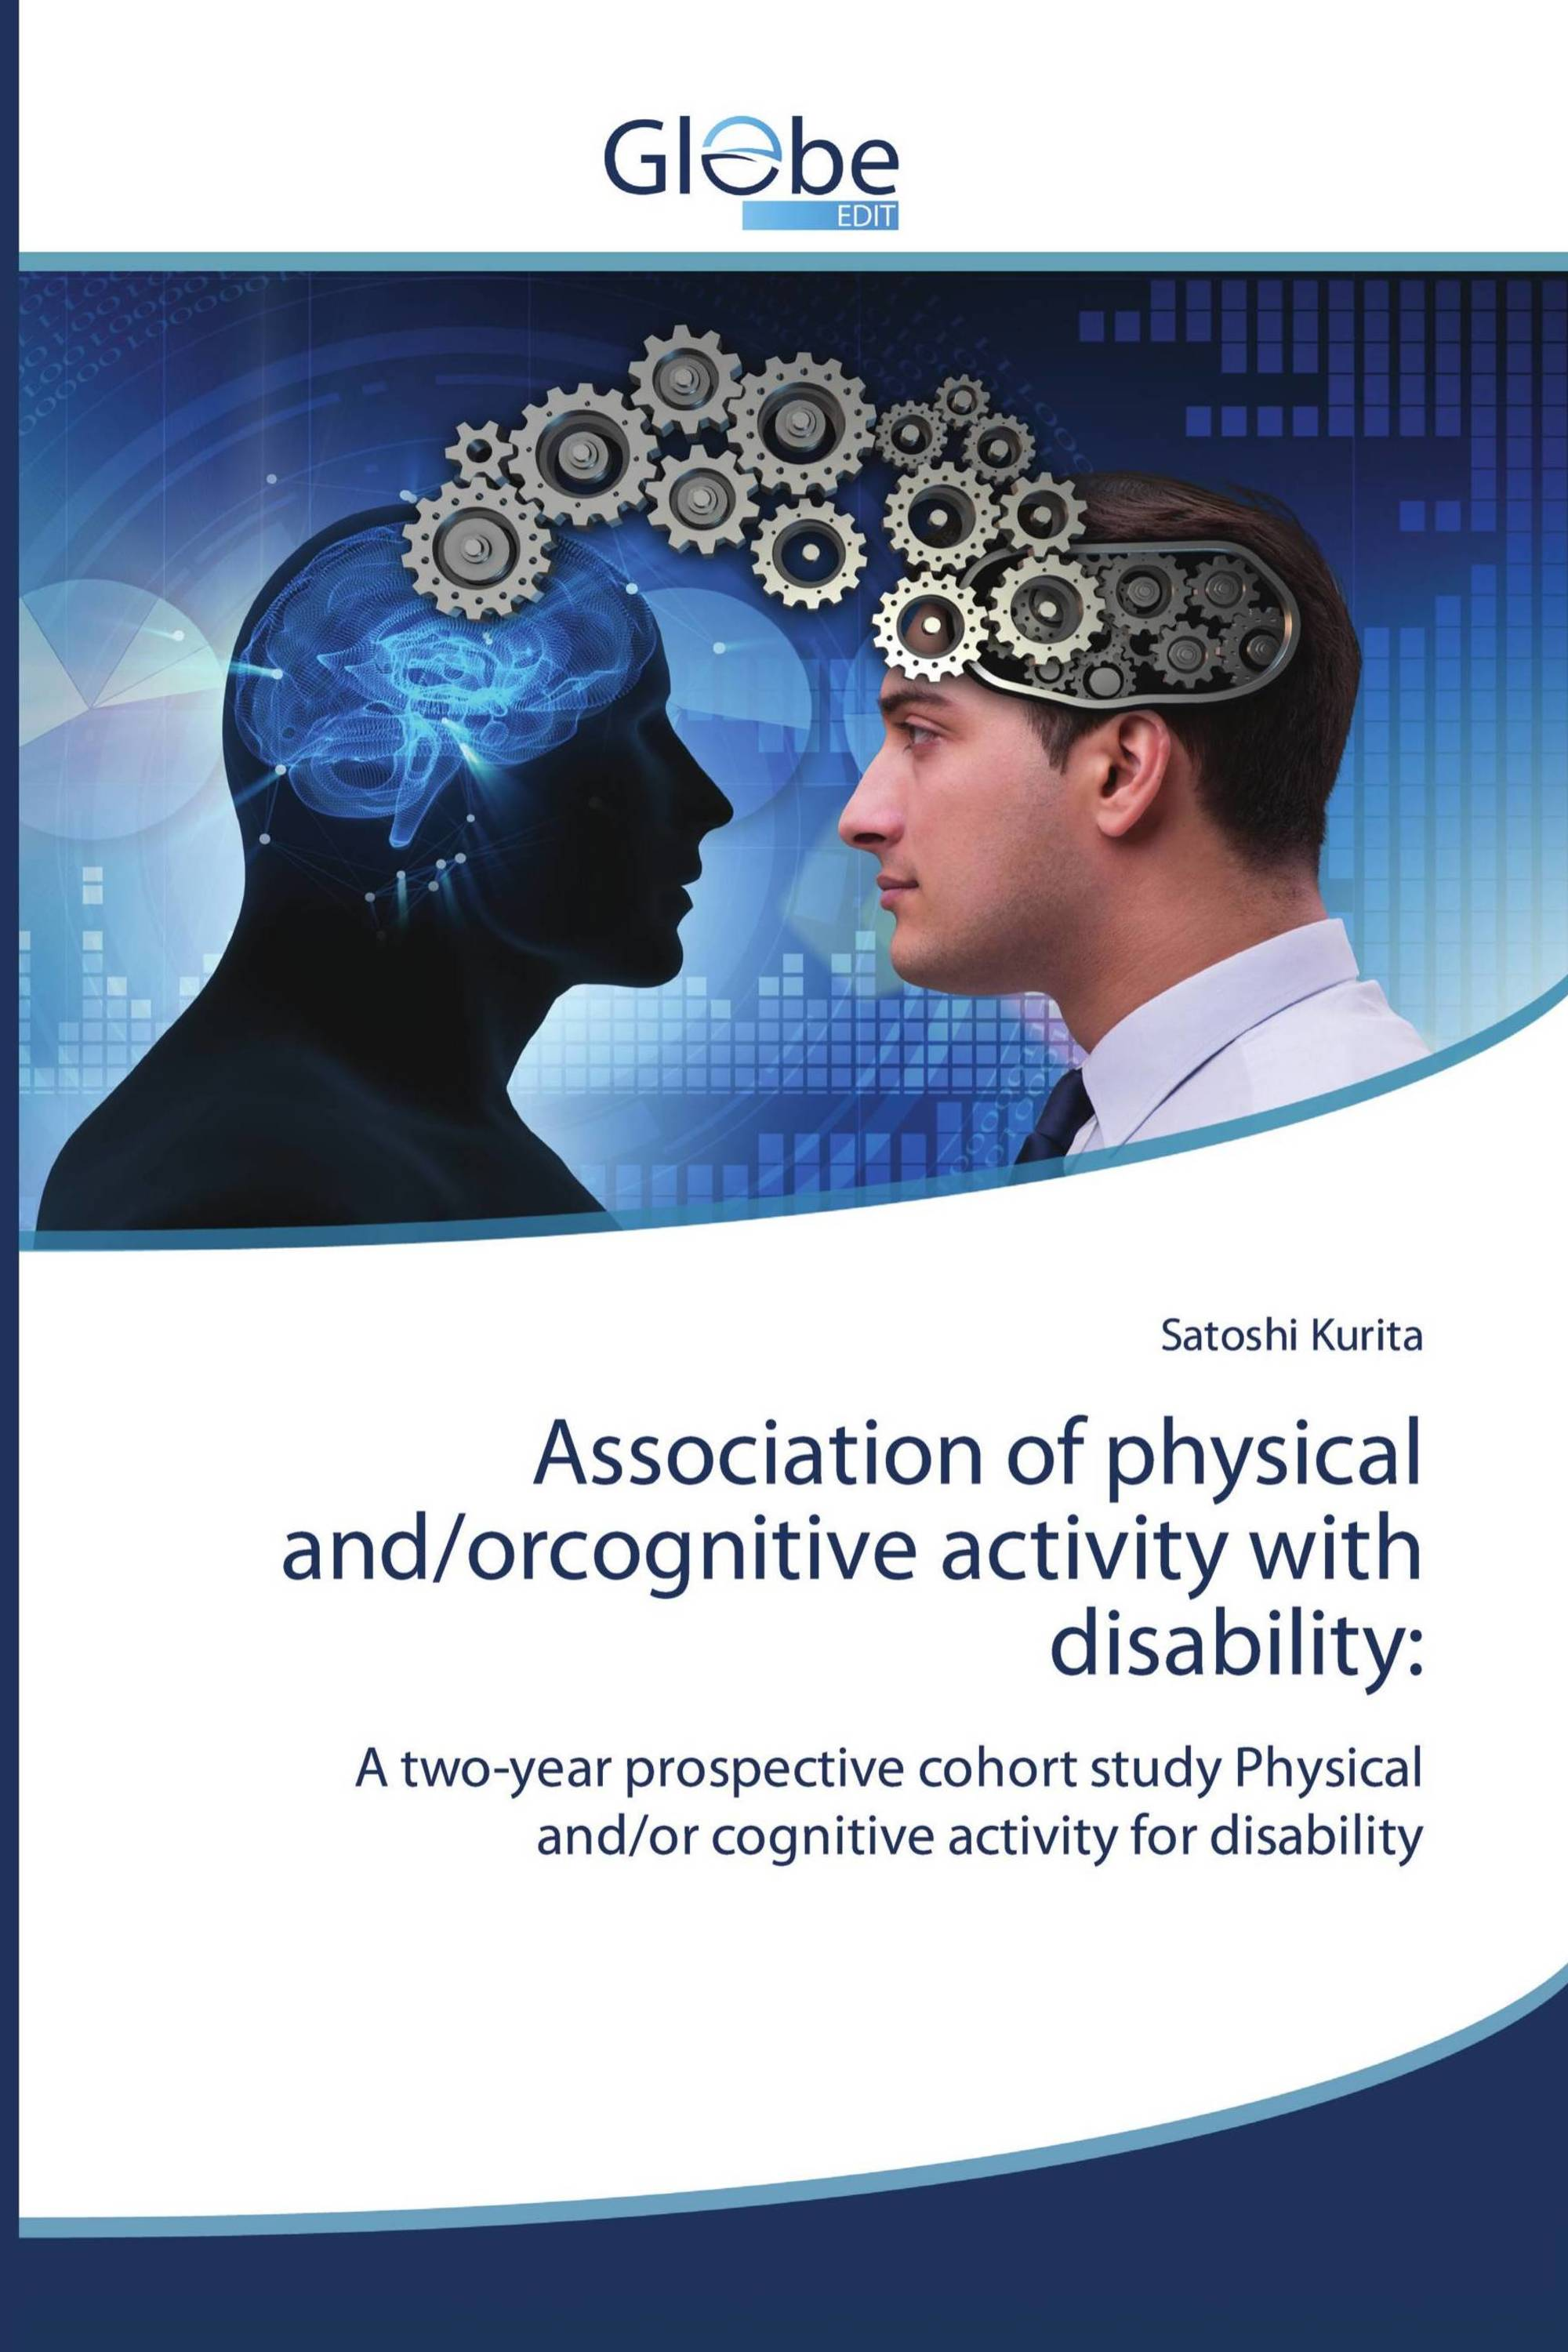 Association of physical and/orcognitive activity with disability: